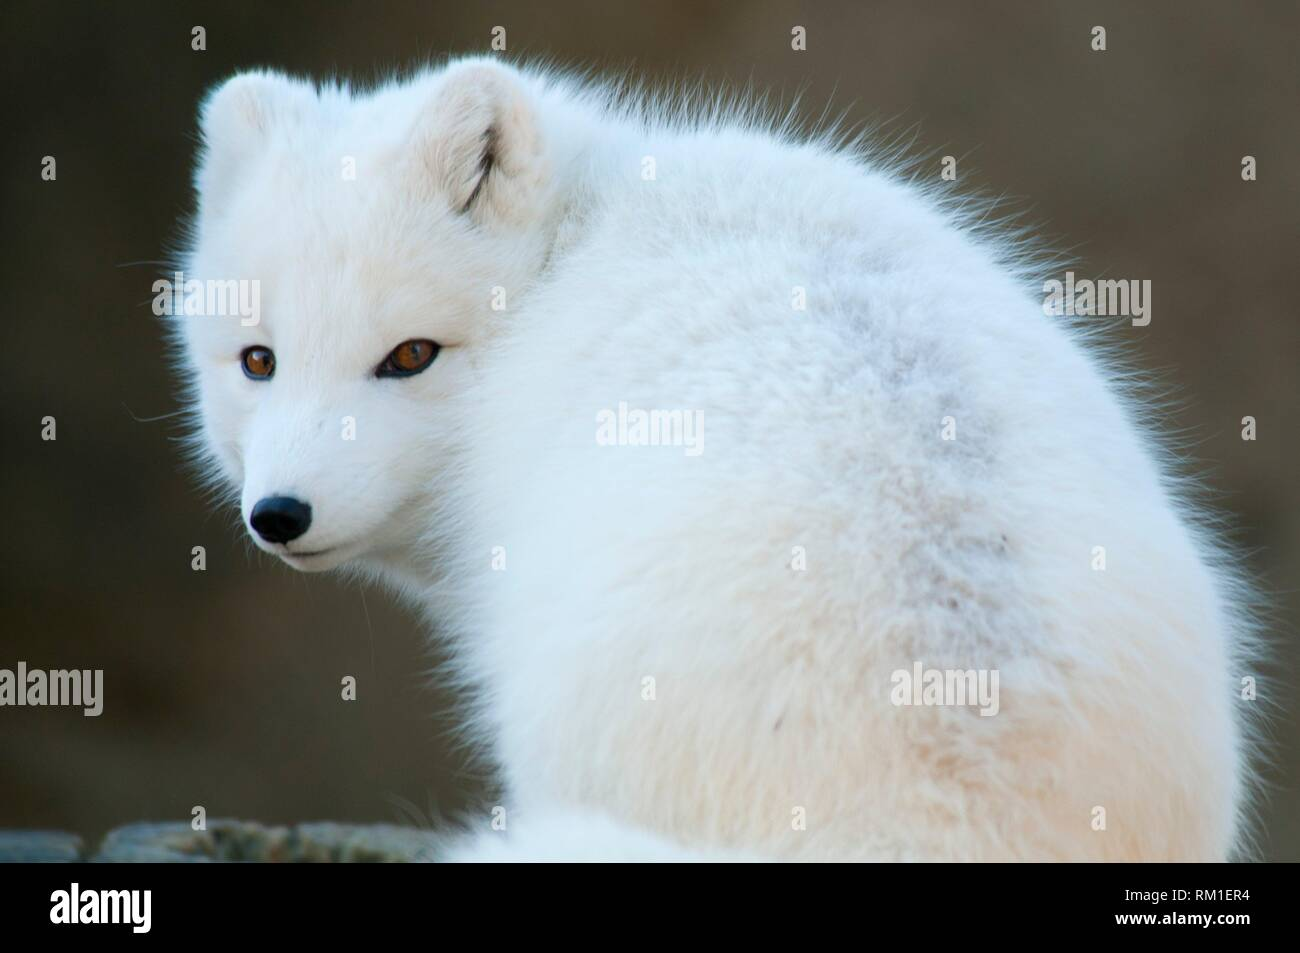 Arctic fox, Point Defiance Zoo and Aquarium, Point Defiance Park, Tacoma, Washington. - Stock Image